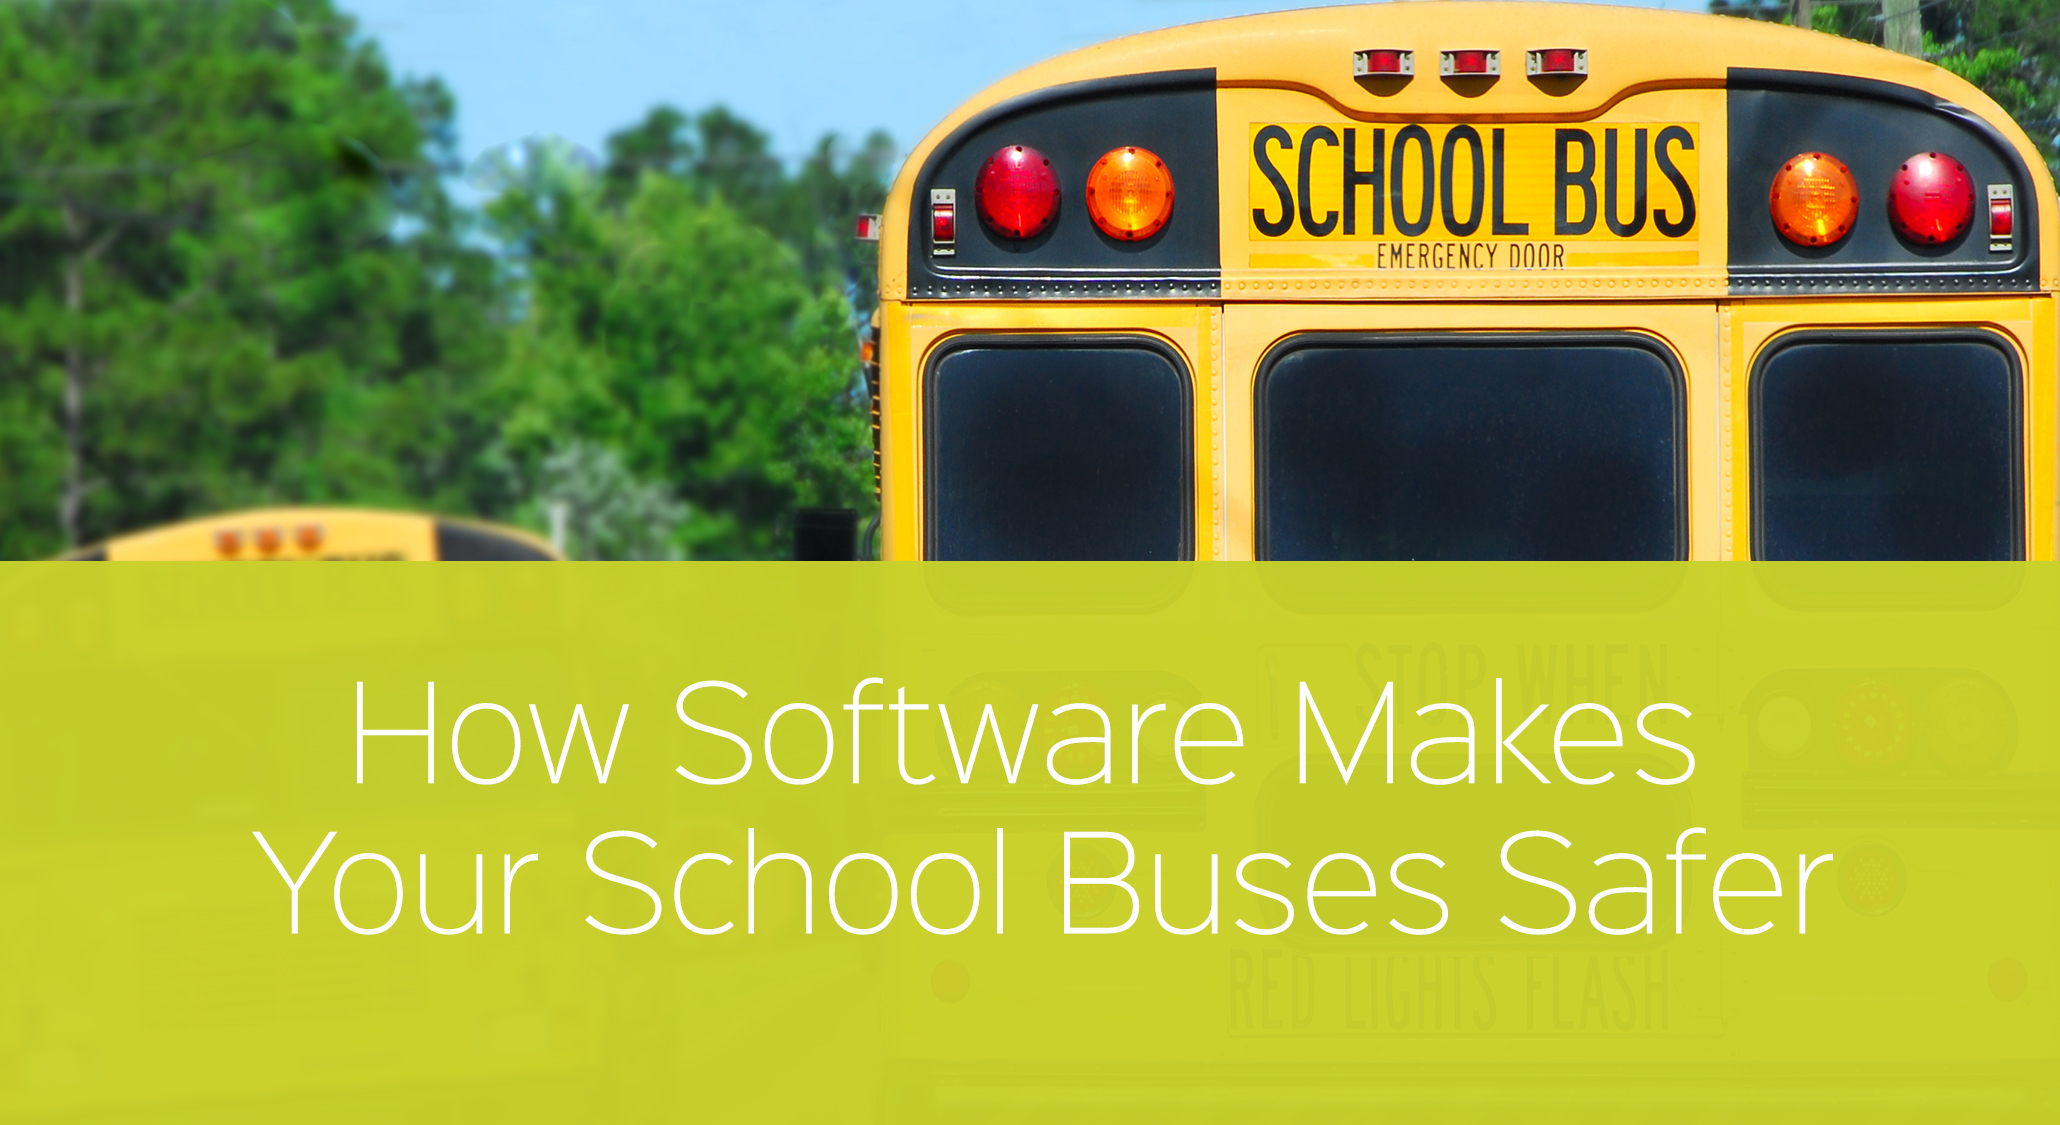 How K-12 Transportation Software Makes Your Buses Safer